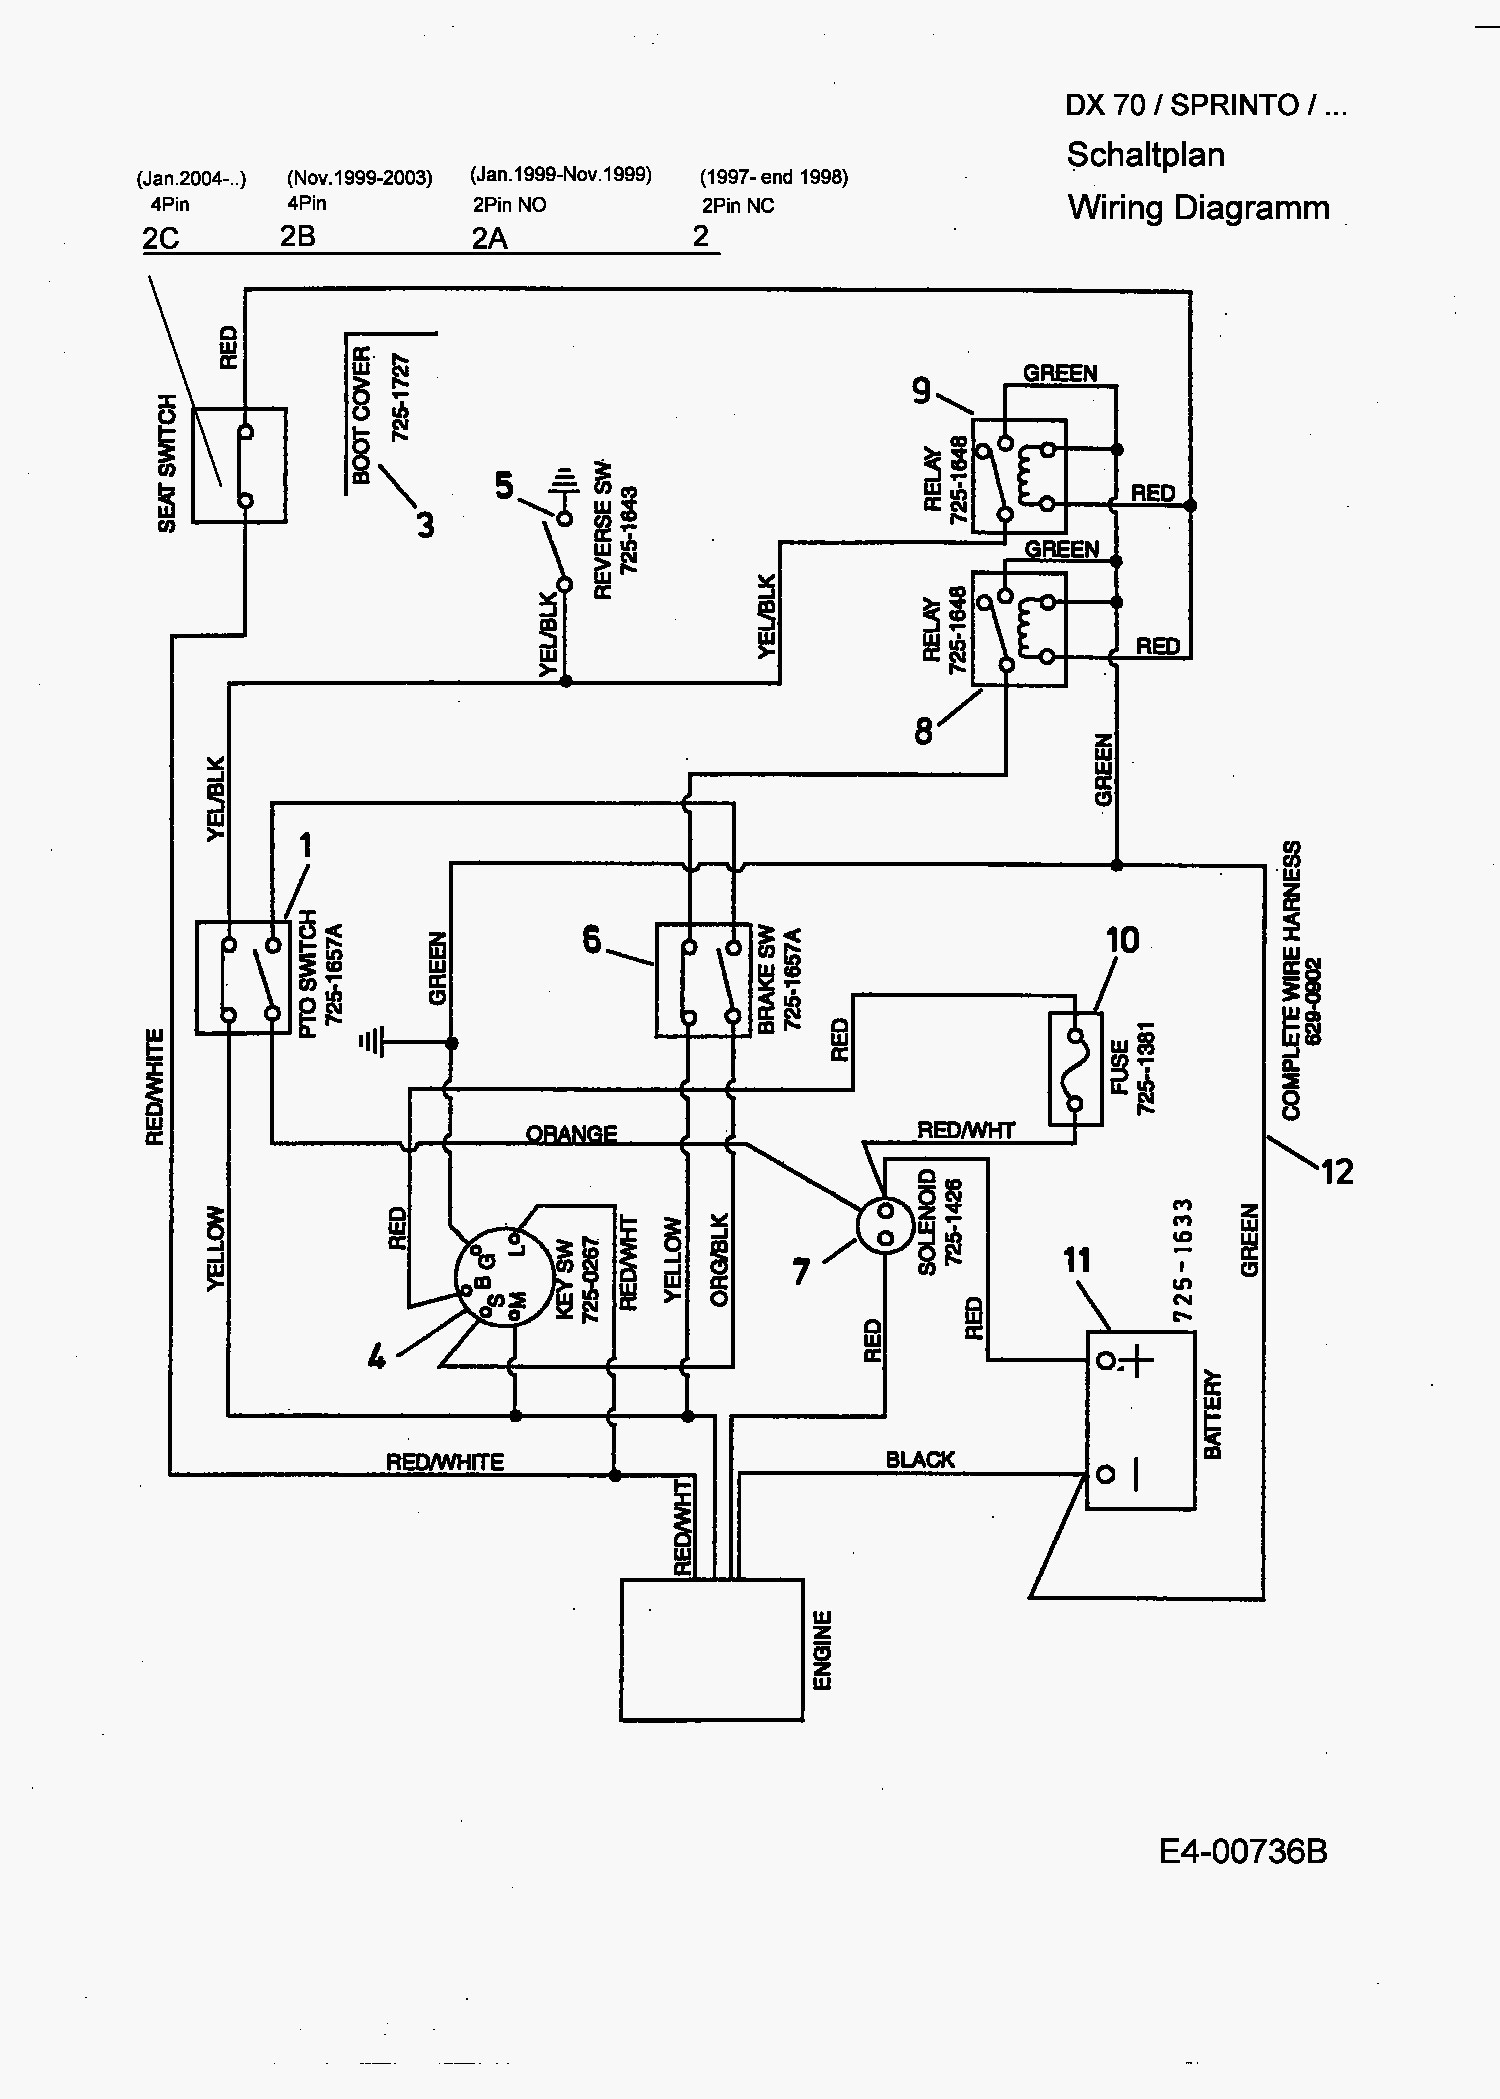 wiring diagram murray 17ac2acs058 wiring diagram murray mower wiring diagram outstanding wiring diagram for murray riding lawn mower composition ronk wiring diagram wiring diagram murray 17ac2acs058